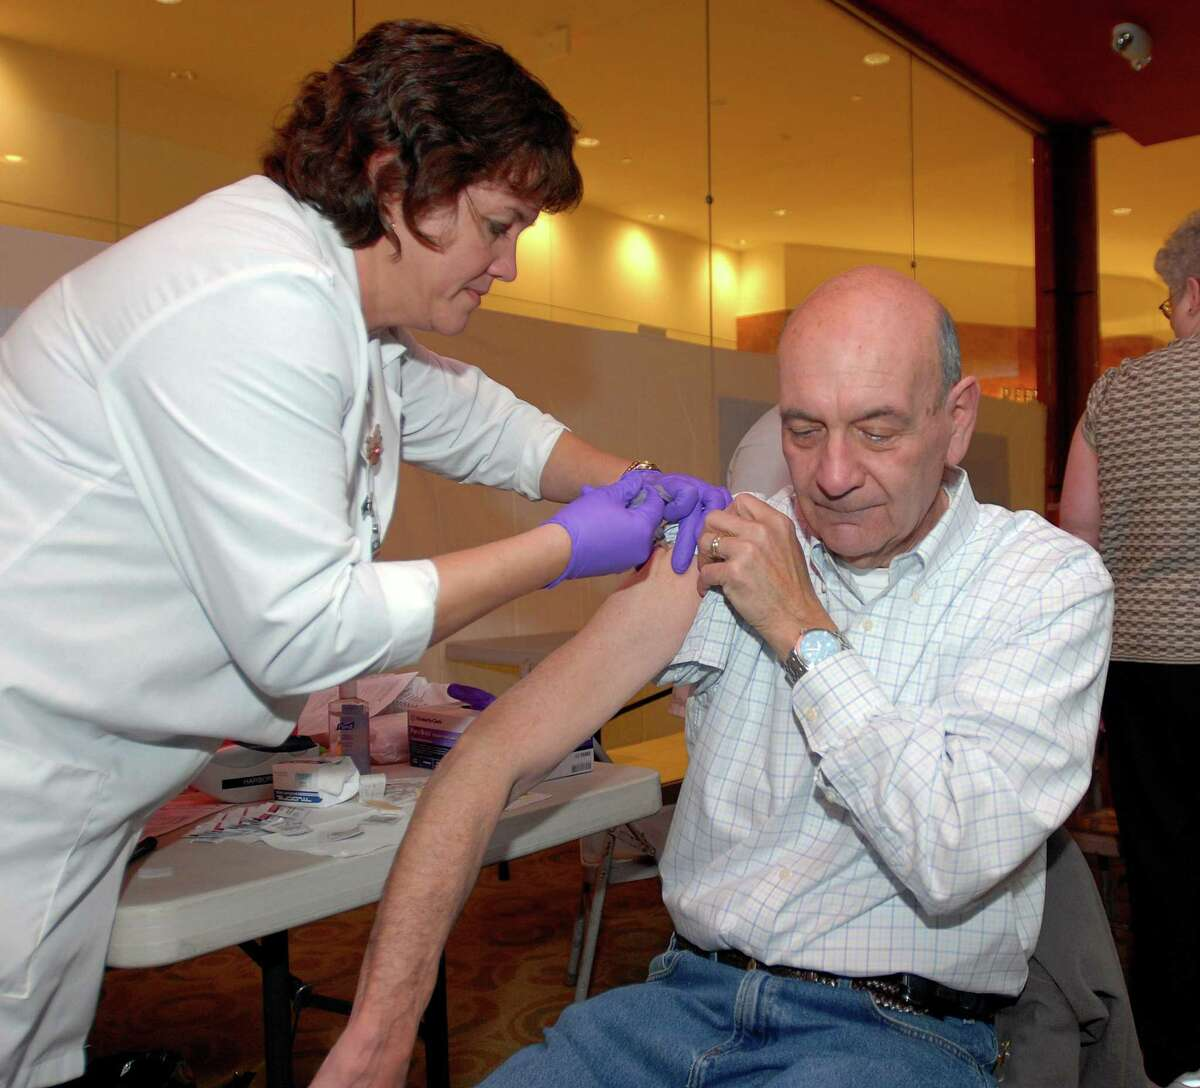 A Stratford man gets a H1-N1 flu vaccination during an influeza clinic at the Westfield Connecticut Post Mall.